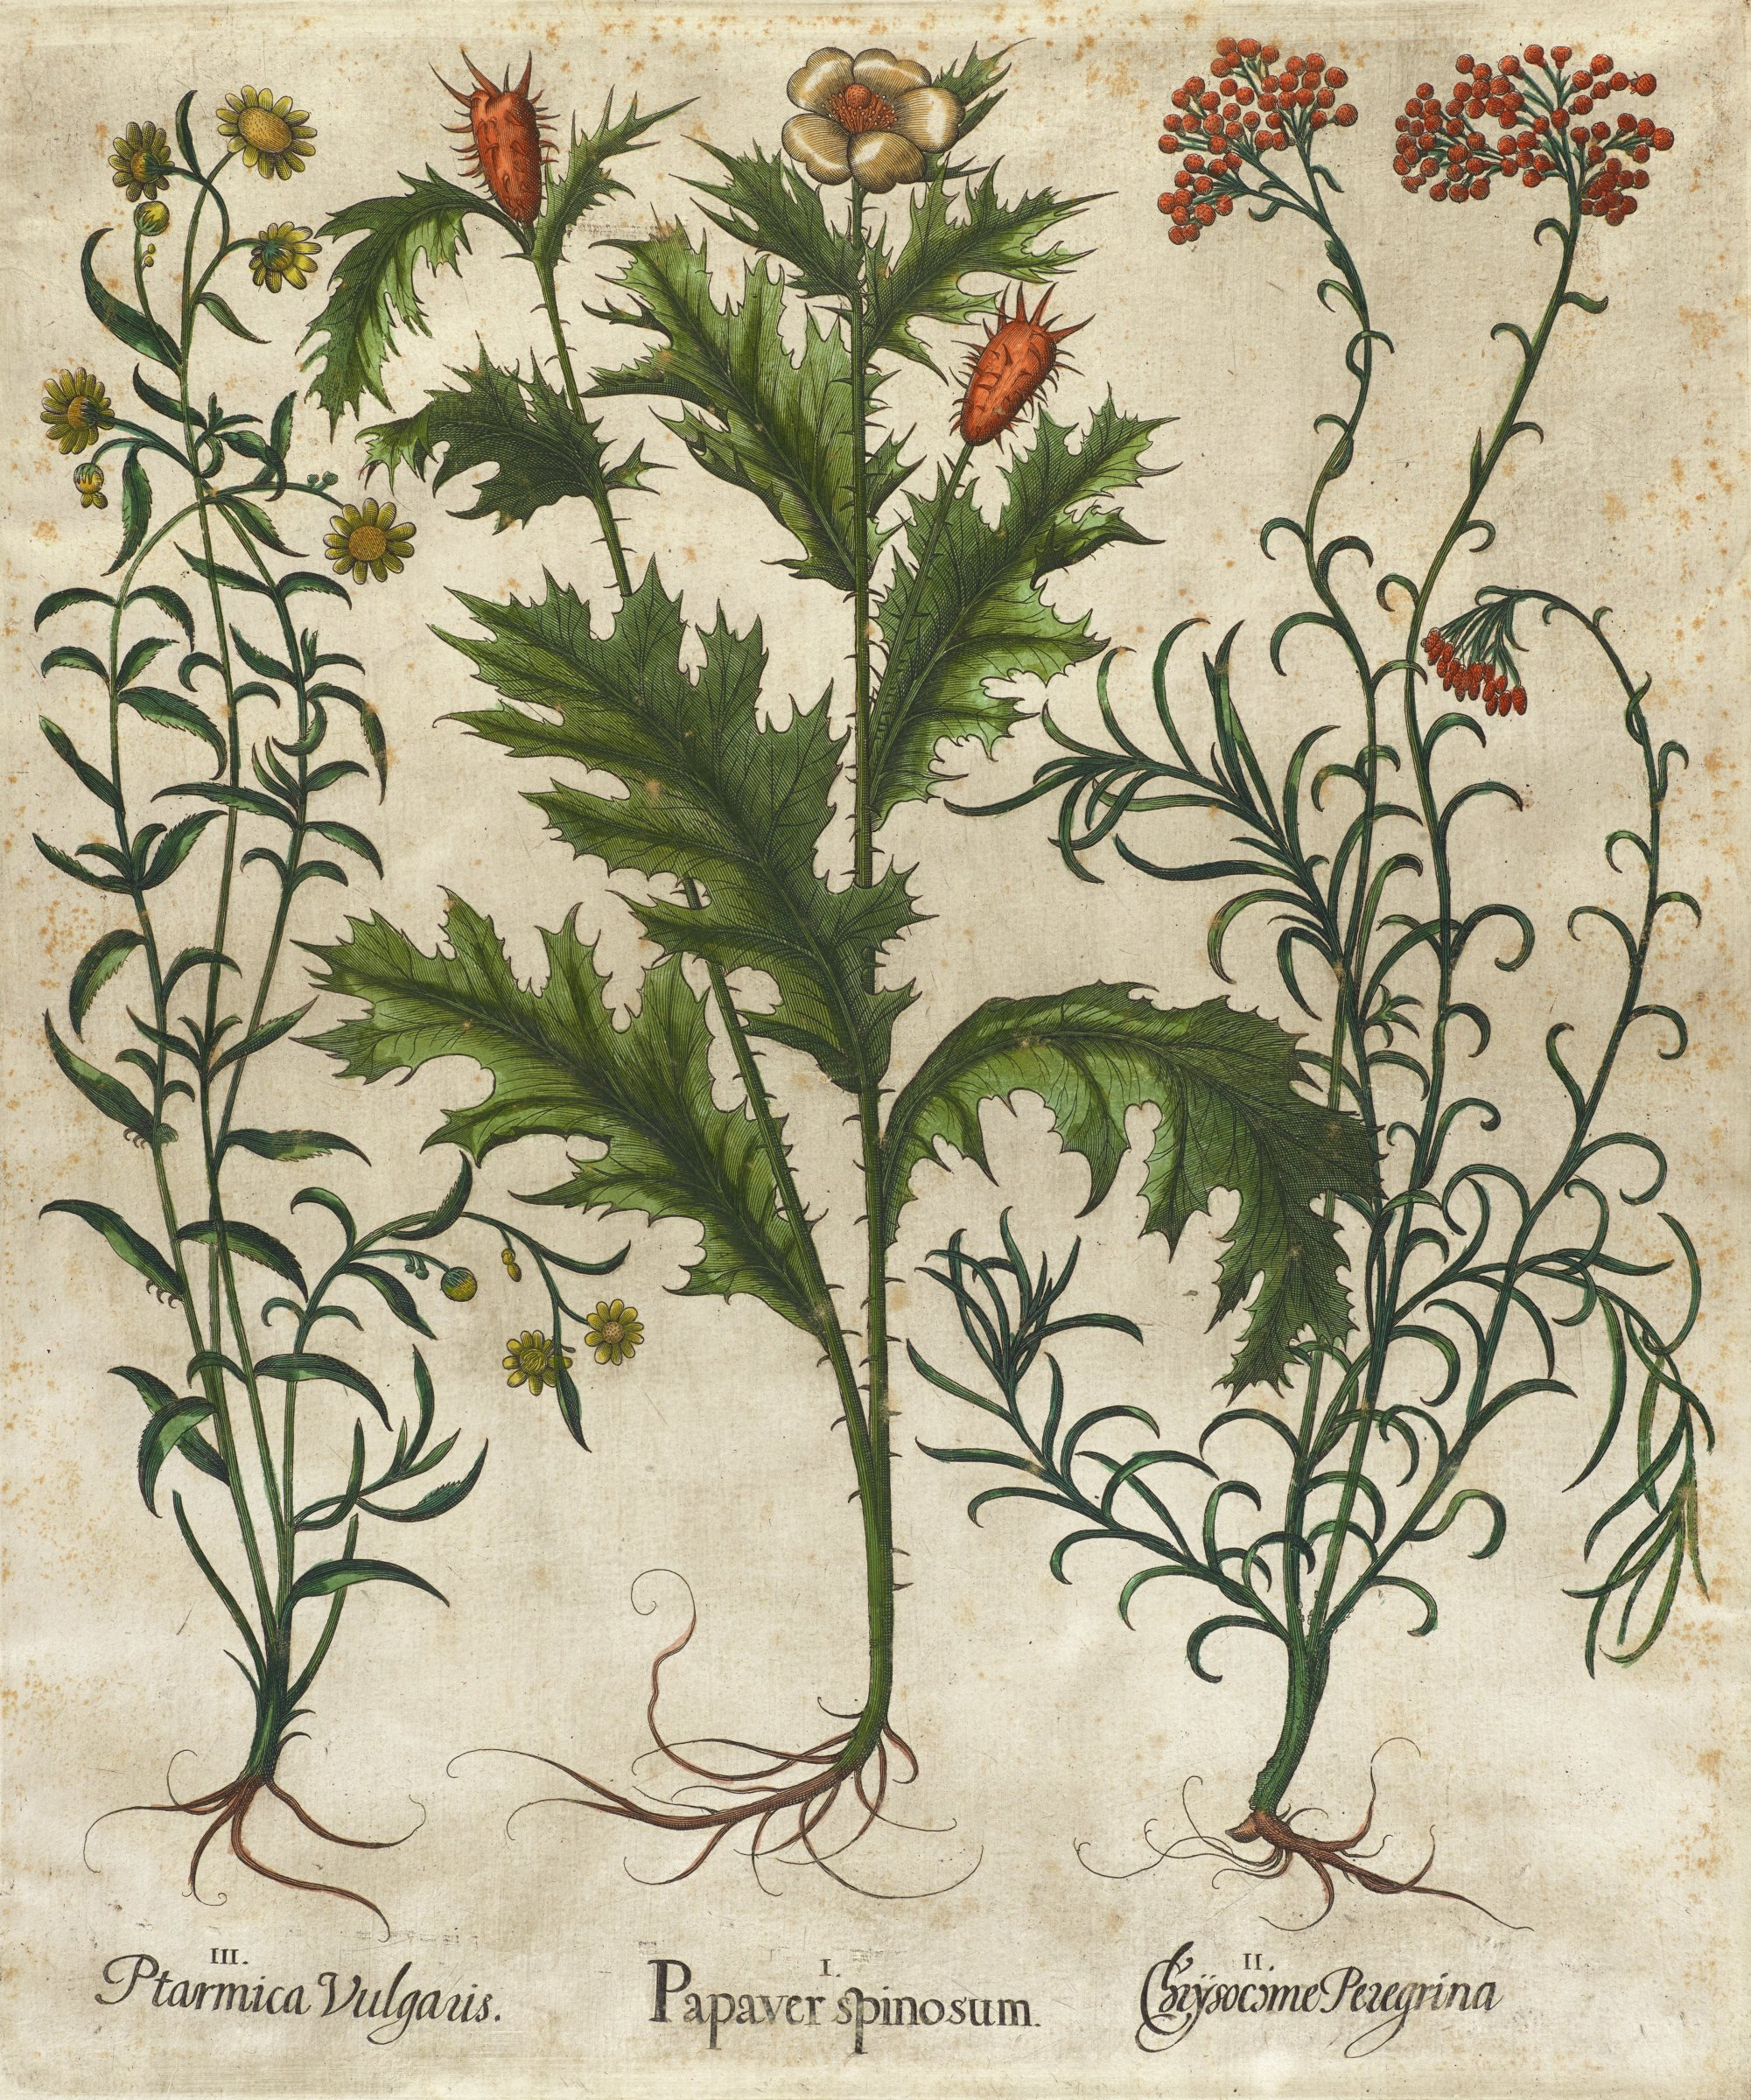 A botanical print depicting three types of plants. On the left, a long, thin stemmed plant with yellow flowers. In the middle, a thick, spikey stemmed with spikey leaves, white flower, and orange spikey buds. On the right, a long, thin stemmed plant with thin curly leaves with red circular flowers.